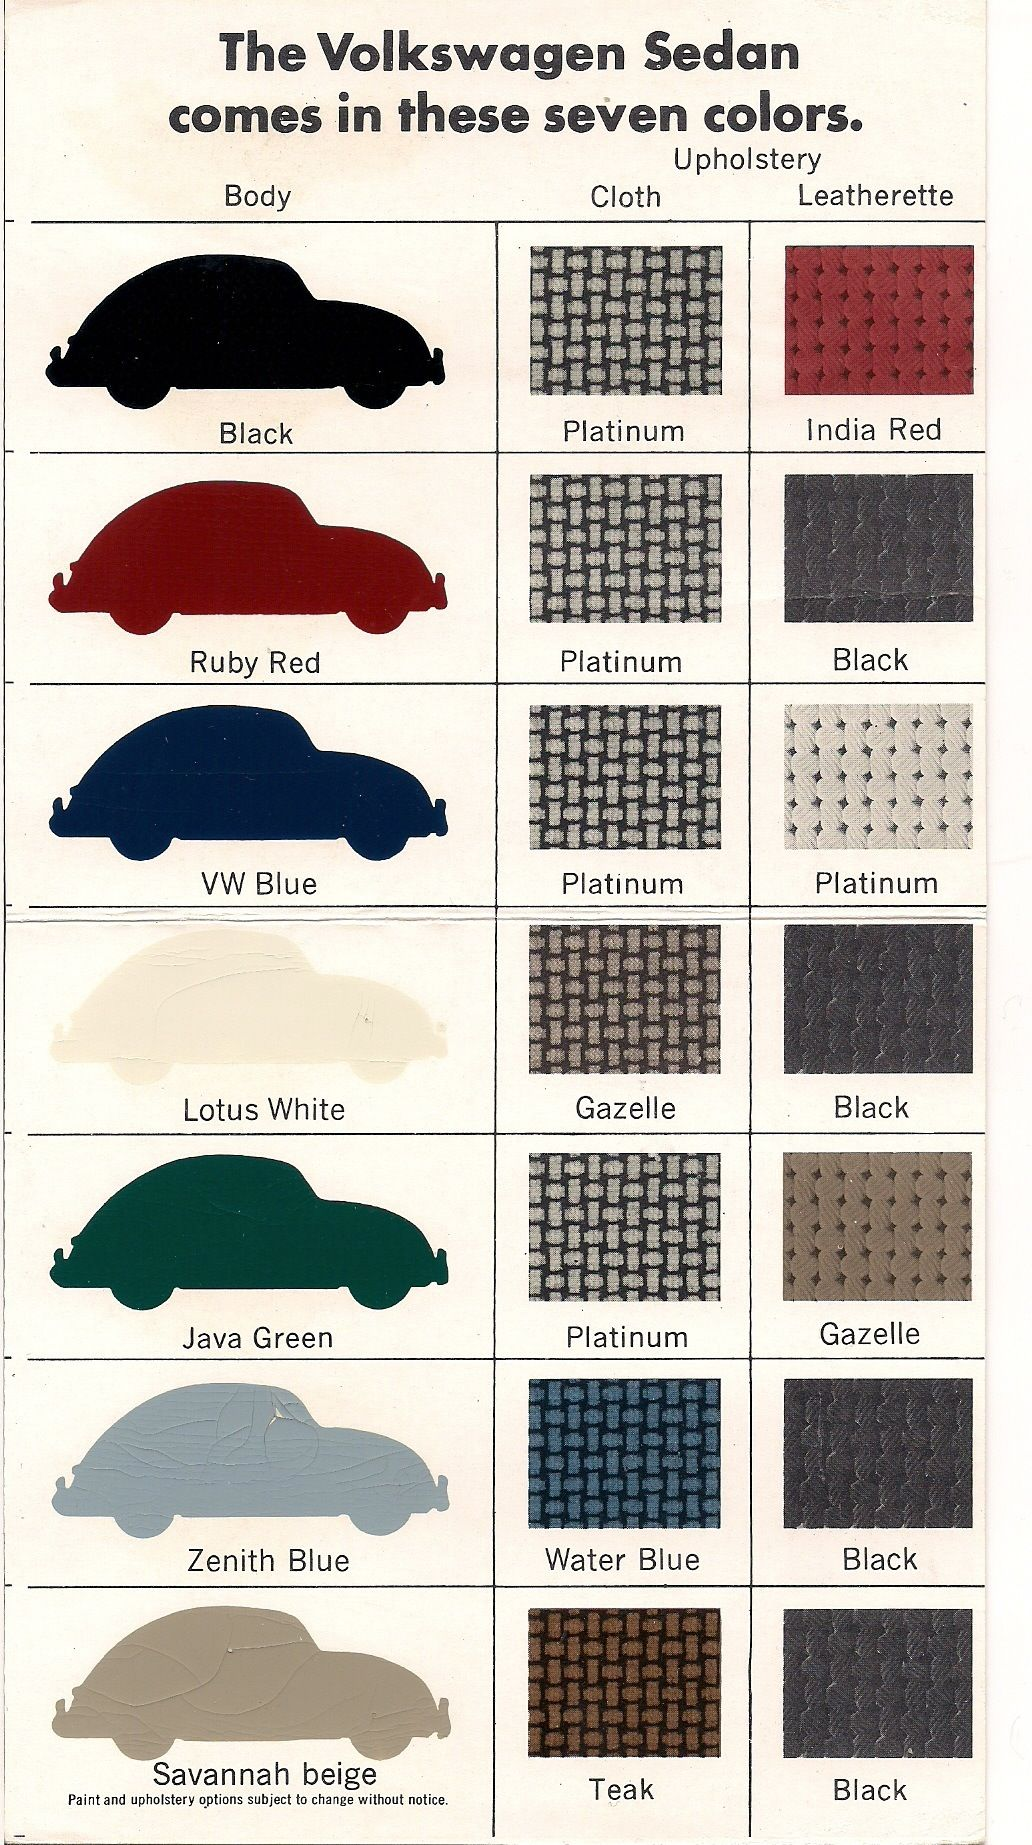 67 Beetle It Comes In 7 Colors Vw Bug Collector Pinterest Porsche 356 Wiring Diagram One Thing We Get A Ton Of Emails About Here At 1967beetlecom Is Color Combinations Seems Everyone Wants To Know What The Correct Combo For Their Vi